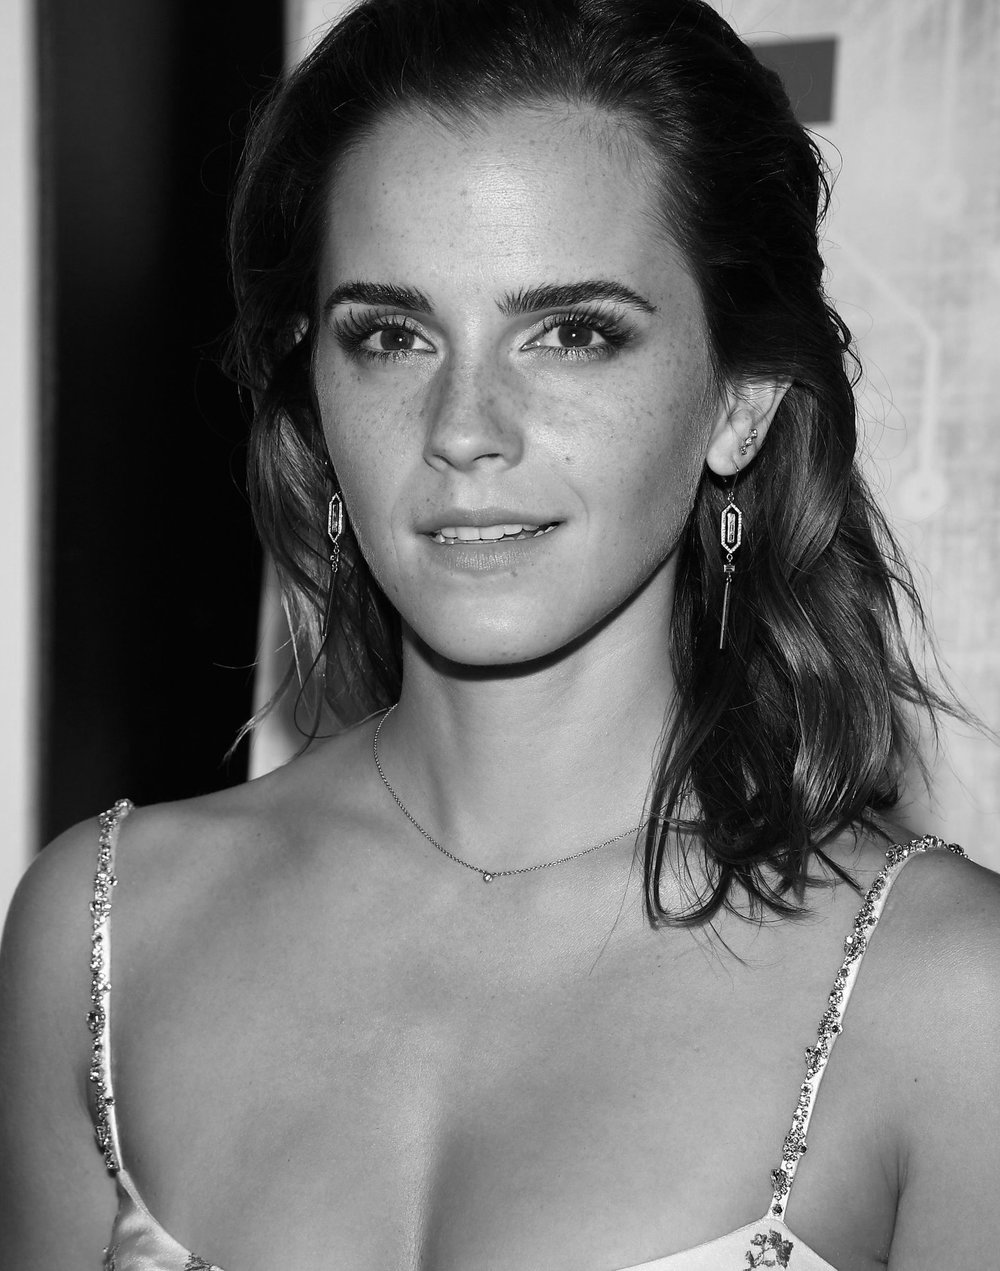 EMMA WATSON  N/S DIAMOND EARRINGS  RED CARPET